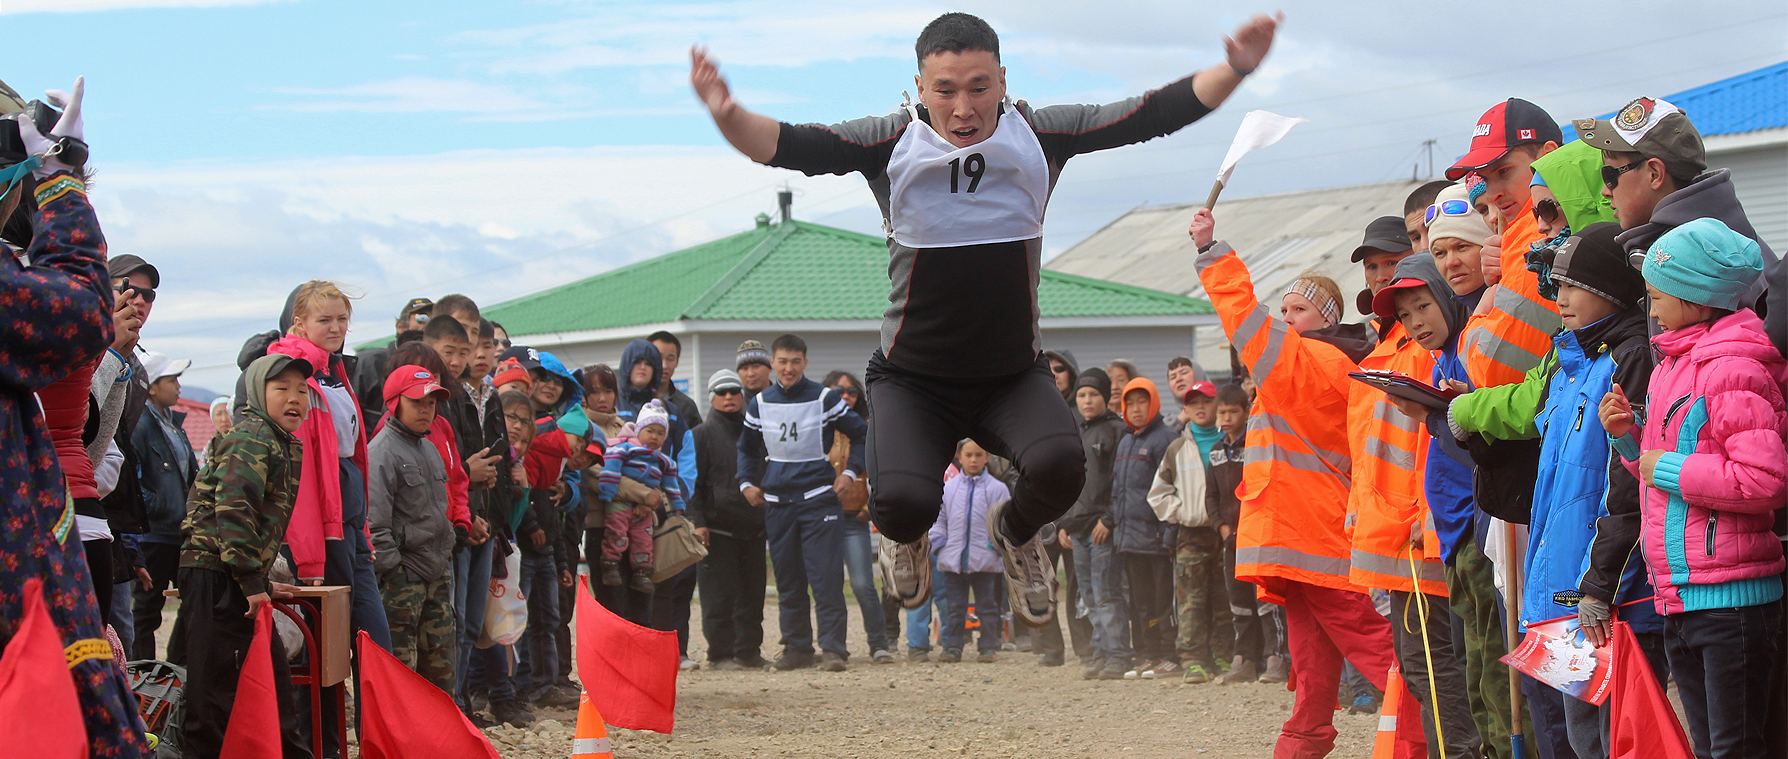 The Features of the Inuit Society